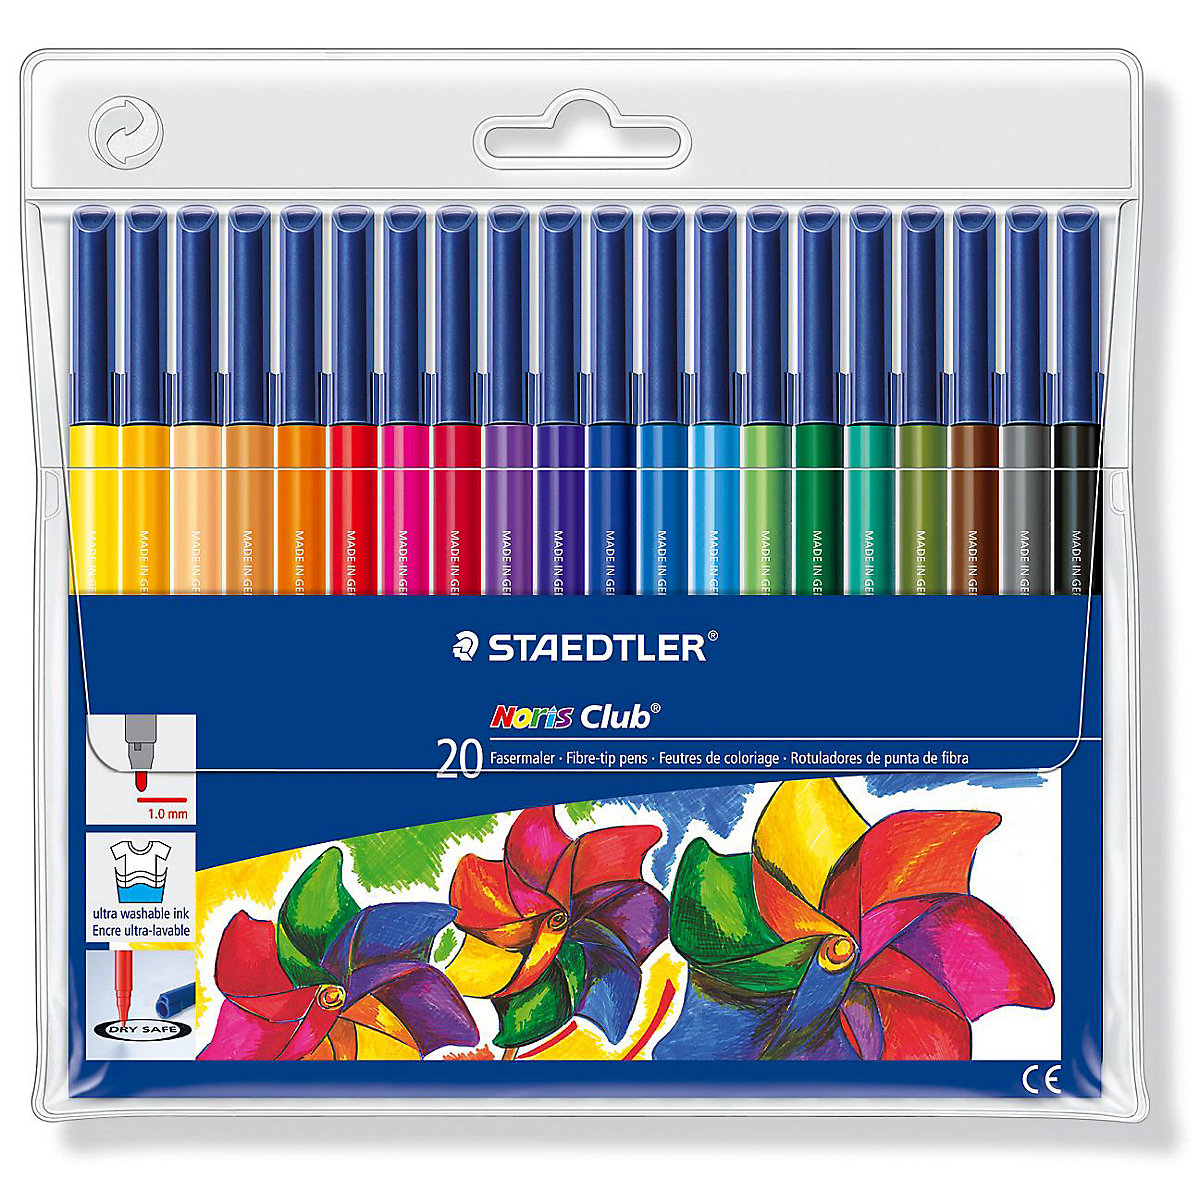 STAEDTLER Art Markers 2031254 childrens creativity goods for needlework marker superior 12 colors set artist soft dual watercolor brush sketch markers water based ink twin tip marker pen for drawing manga